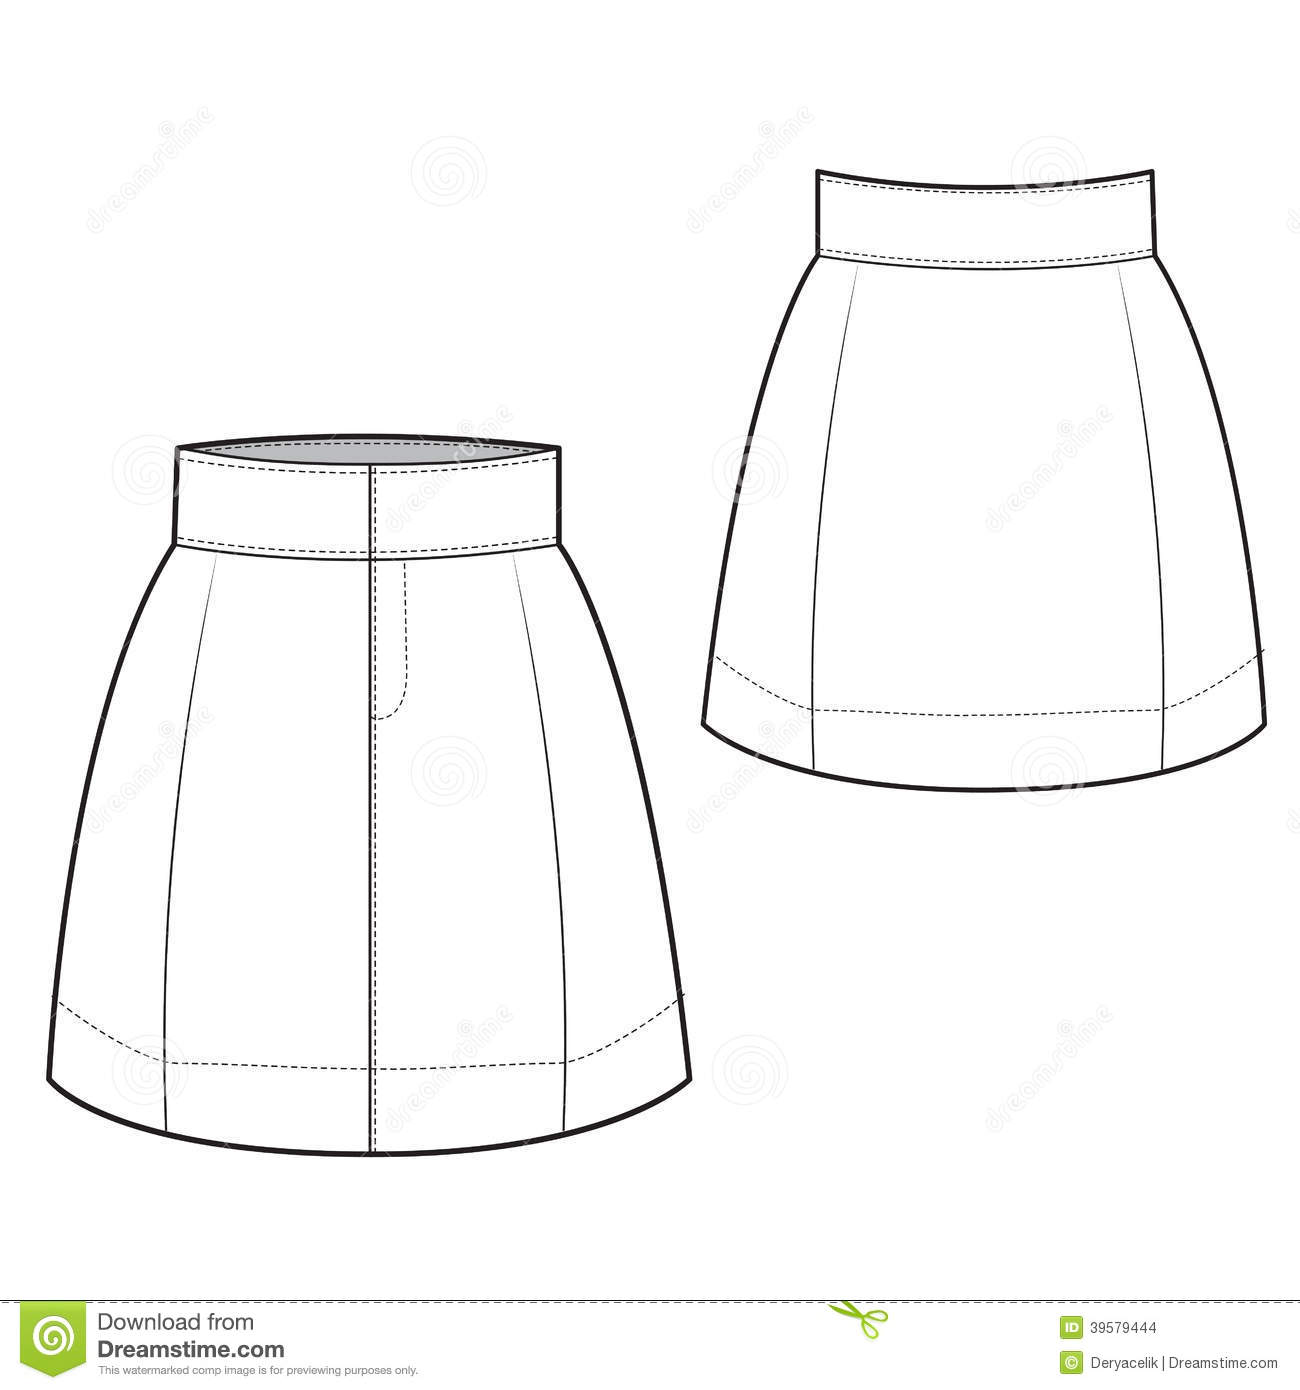 Skirt Line Drawings together with G further Womens Pleated Pants Fashion Flat Template further Collectionpdwn Pleated Skirt Technical Drawing in addition 207095282838987732. on denim skirt